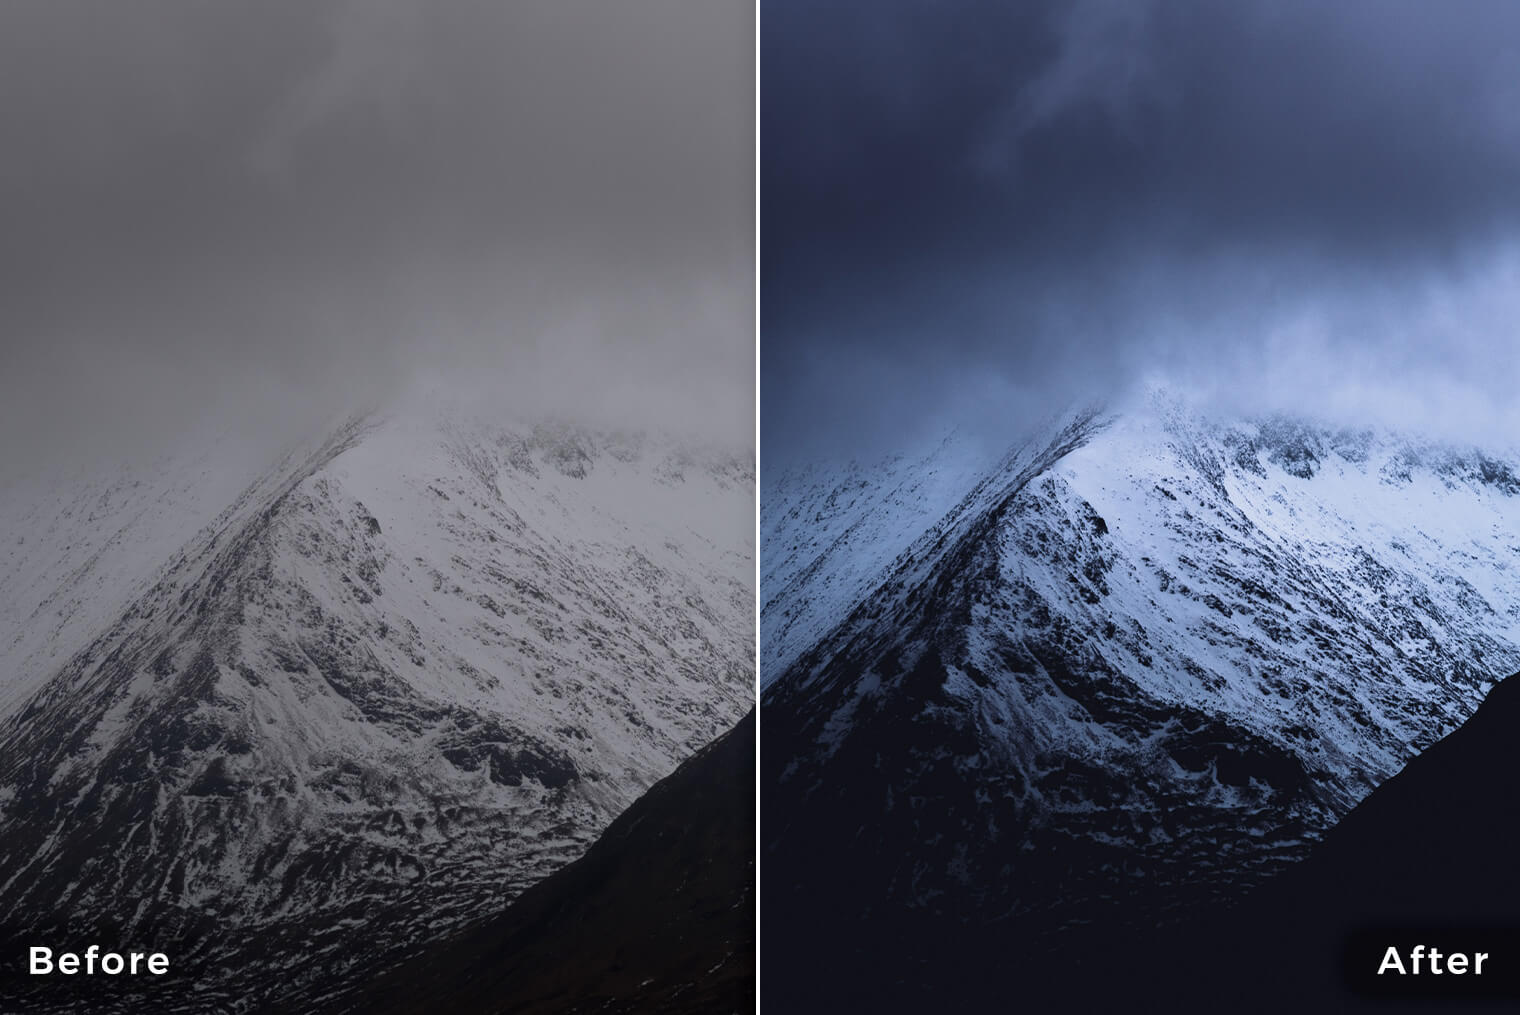 Dark and Moody Mountainscapes Lightroom Presets